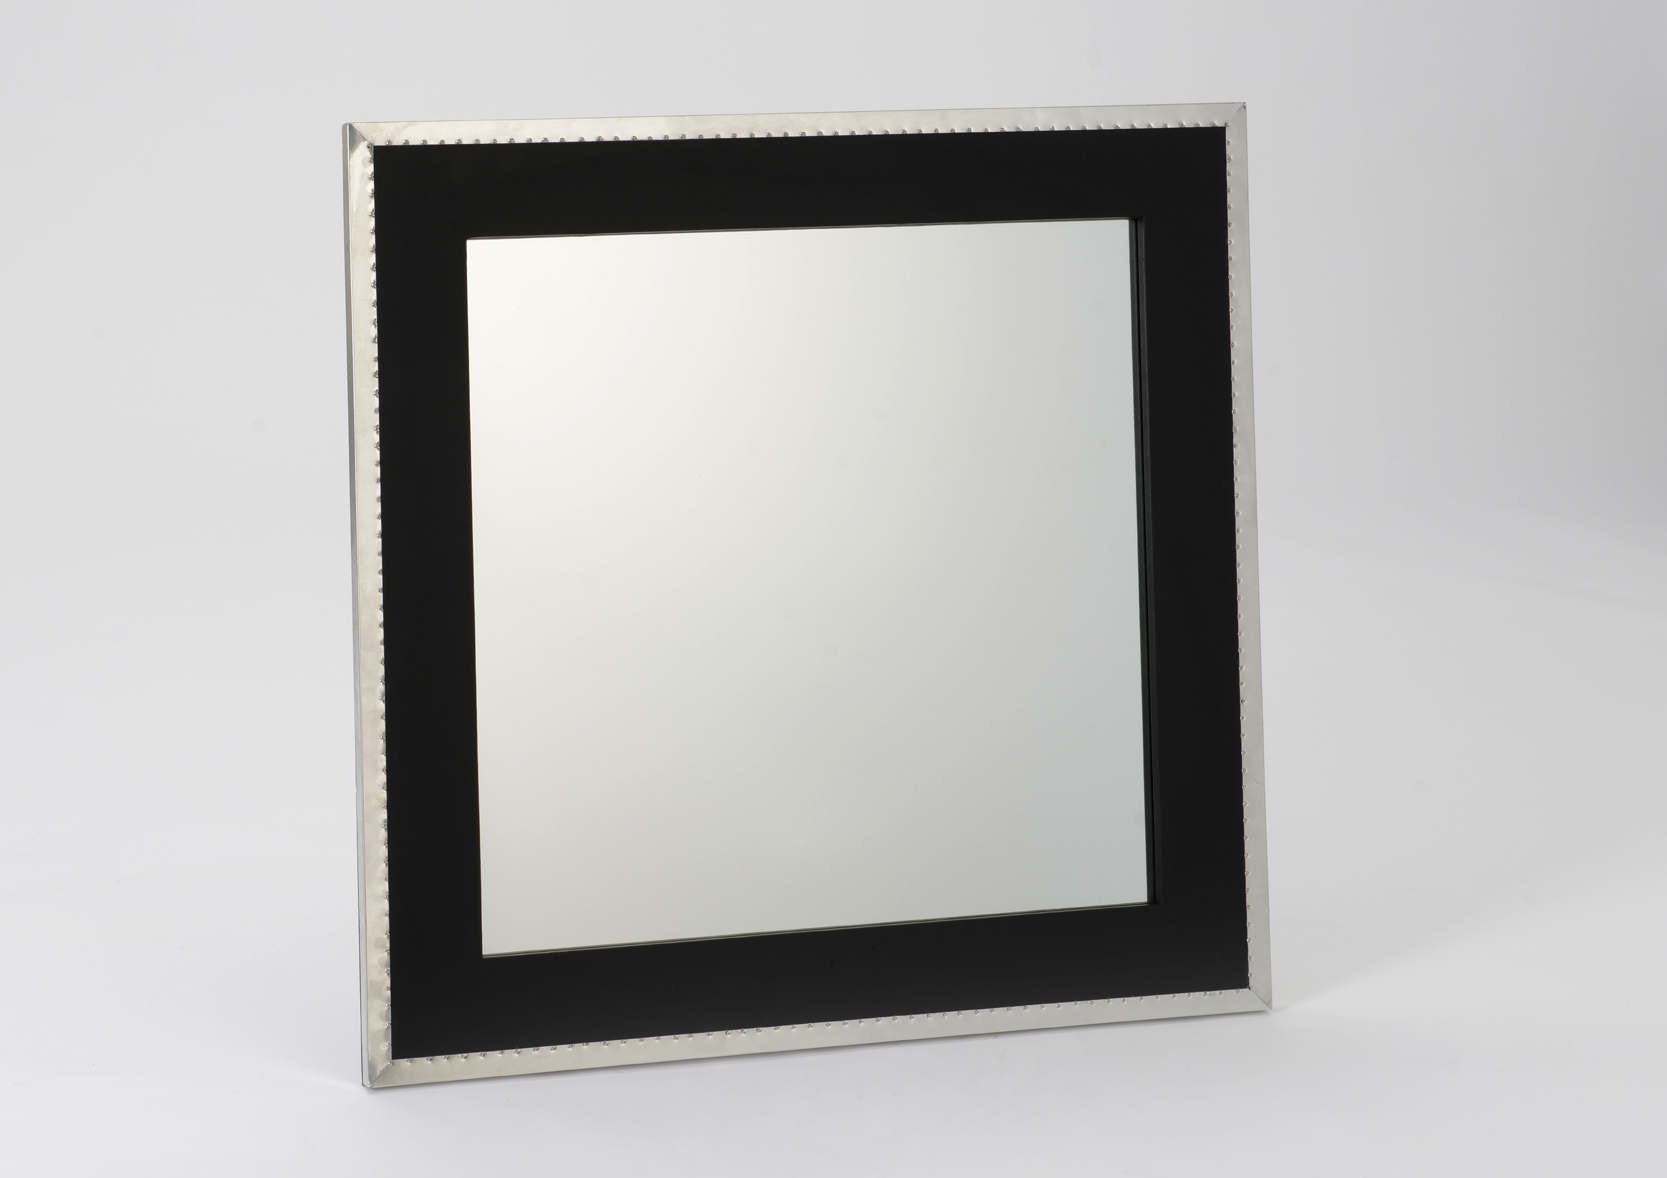 miroir carr 121959 box33creation ForMiroir Carre